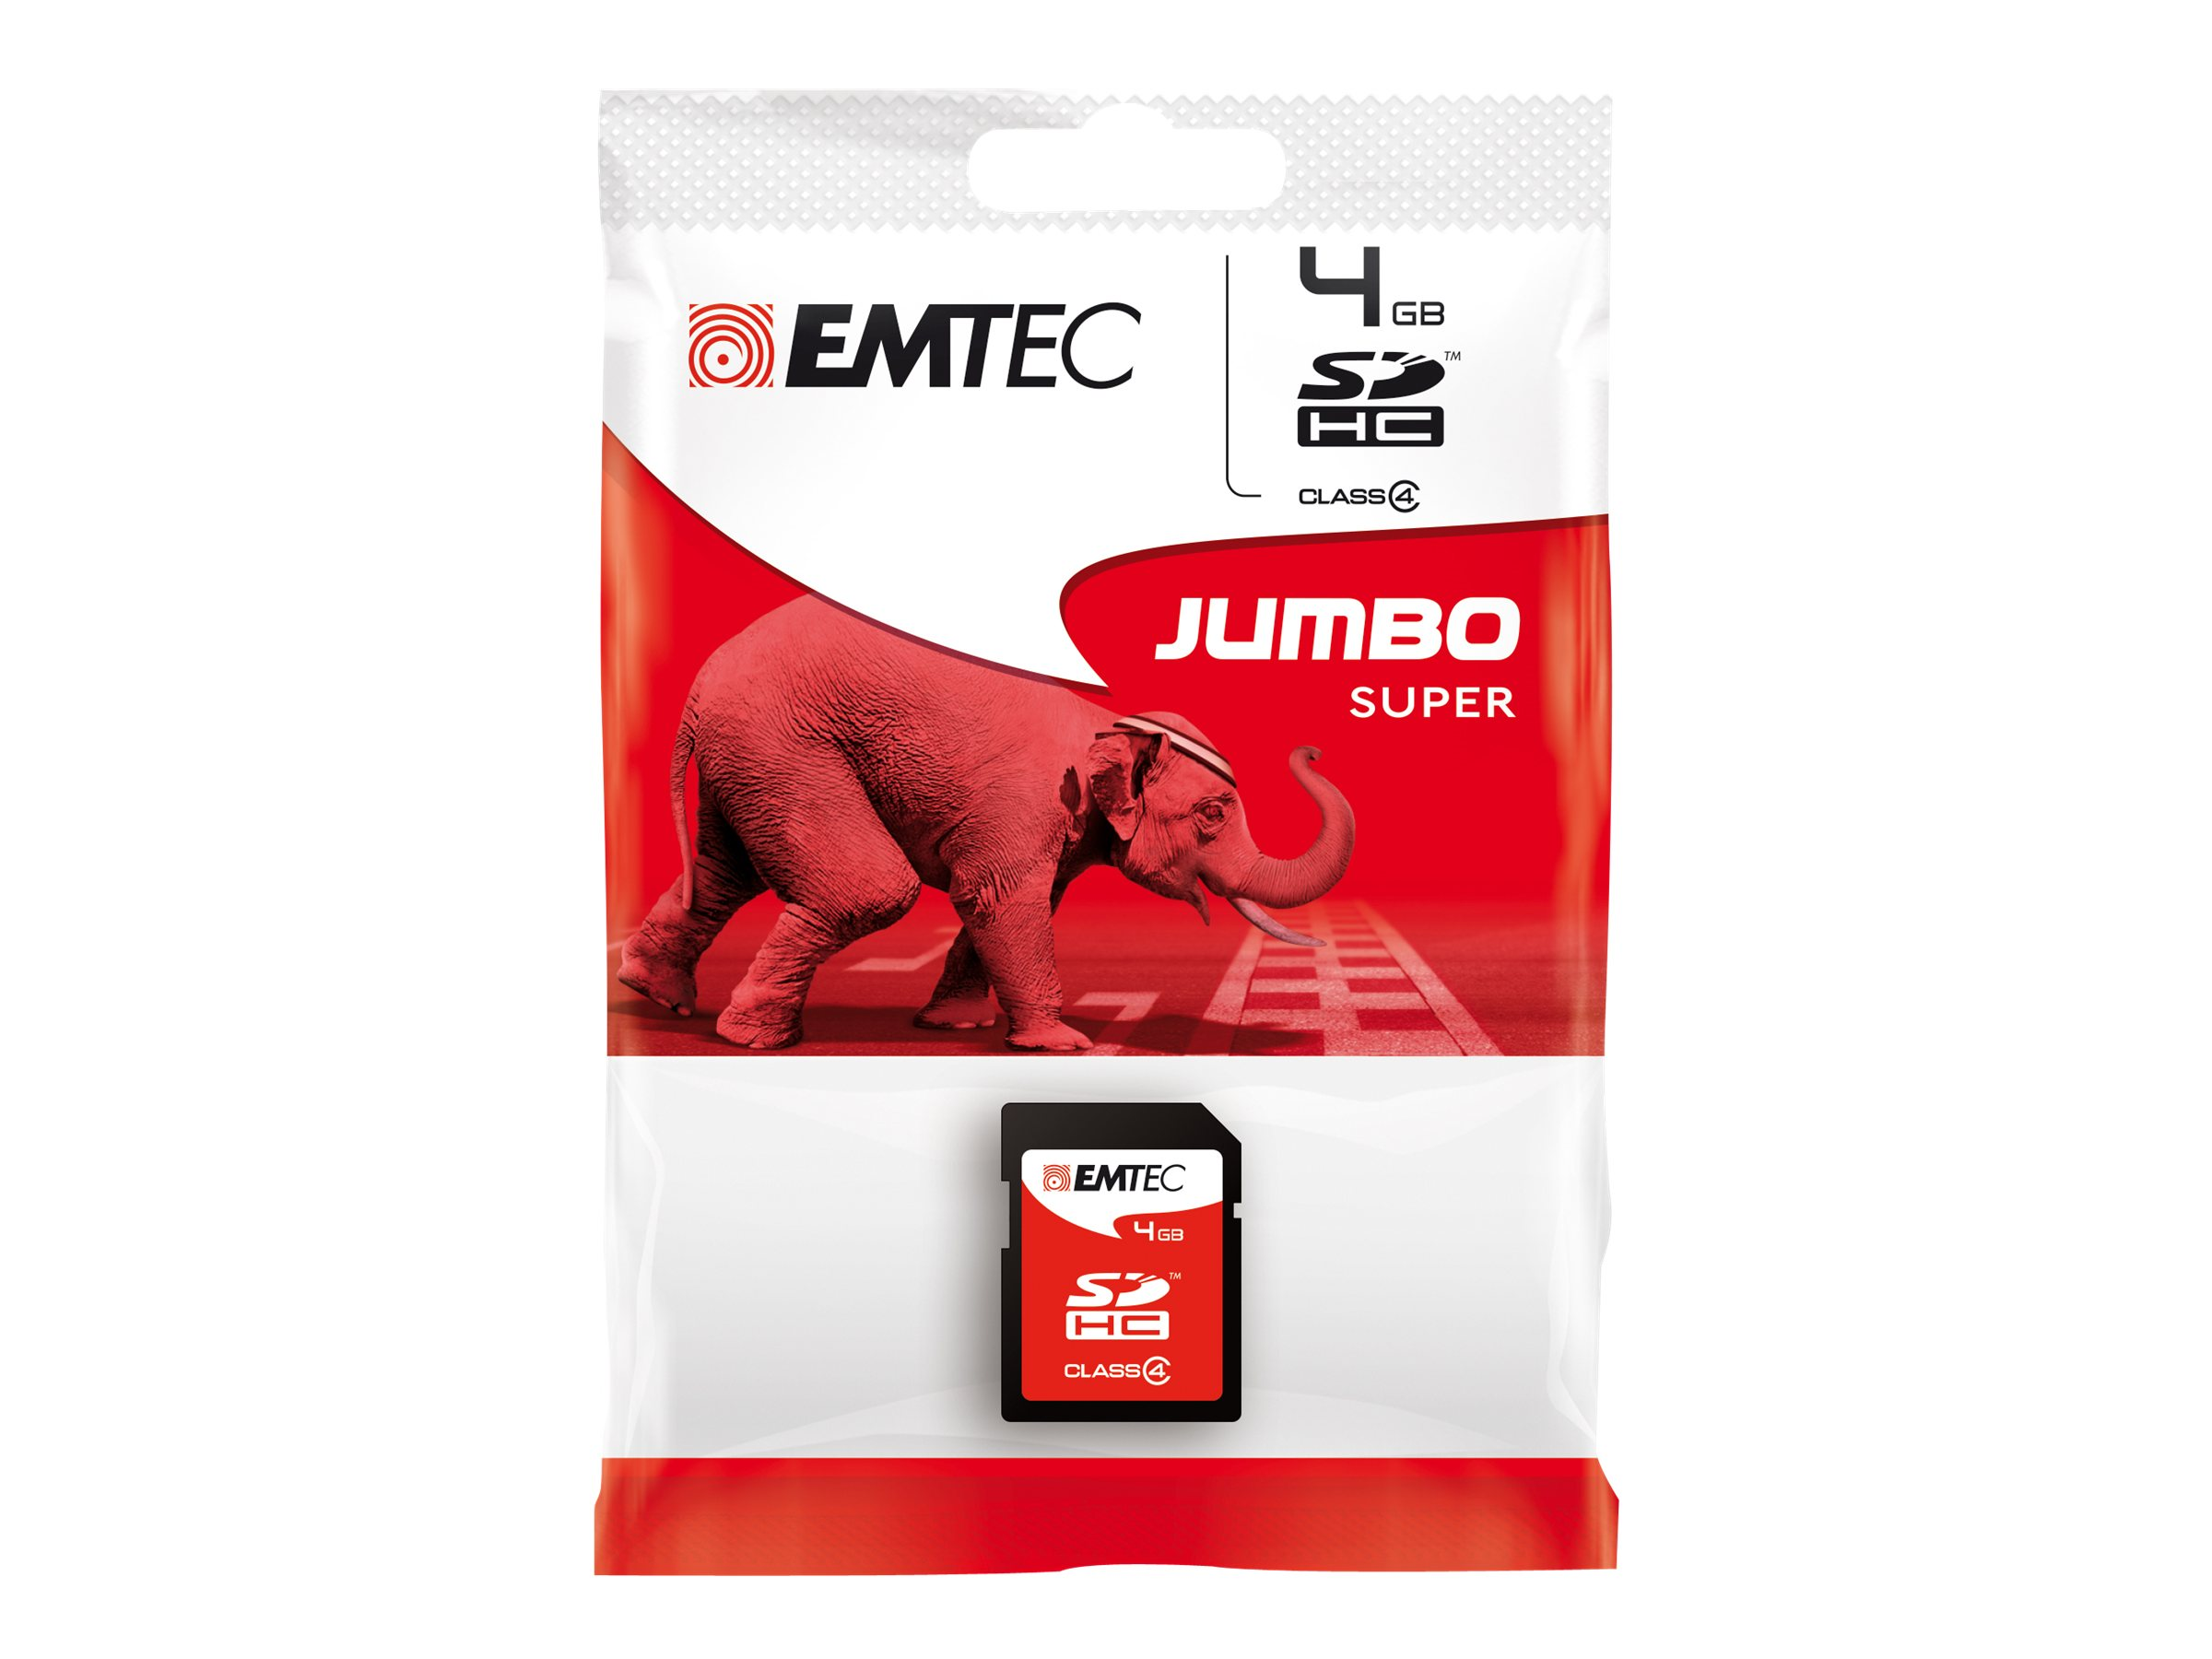 EMTEC Jumbo Super - Flash-Speicherkarte - 4 GB - Class 4 - SDHC